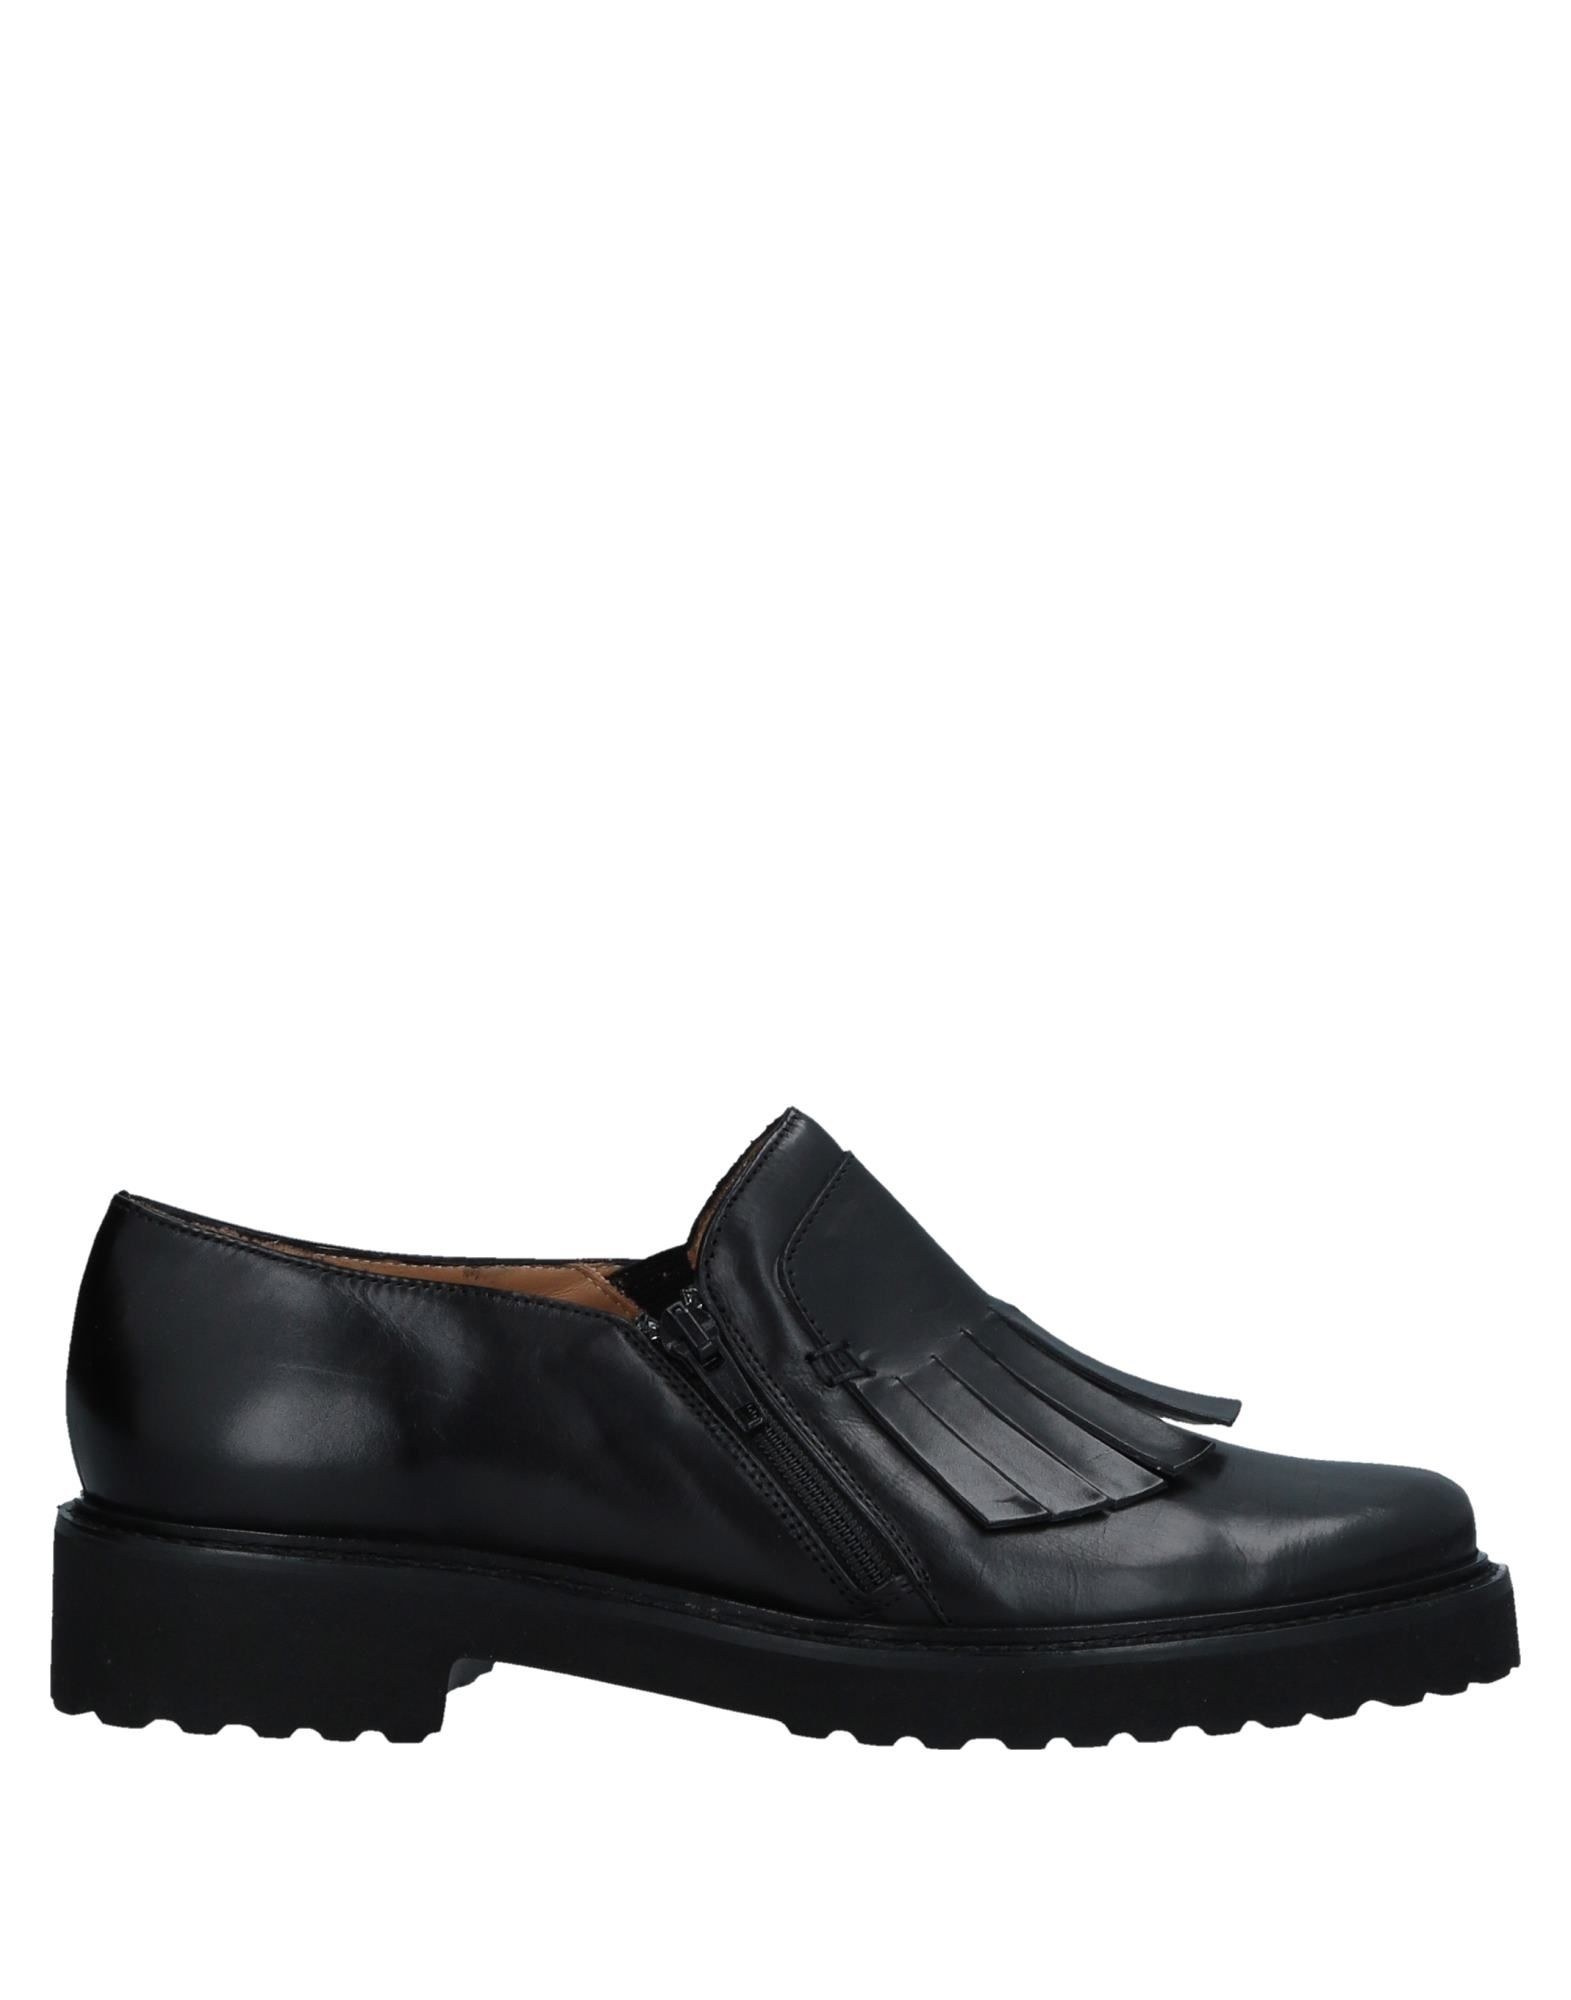 Zanfrini Cantù Loafers - Women Zanfrini Cantù Loafers online on 11526291RX  United Kingdom - 11526291RX on 3a3b8f